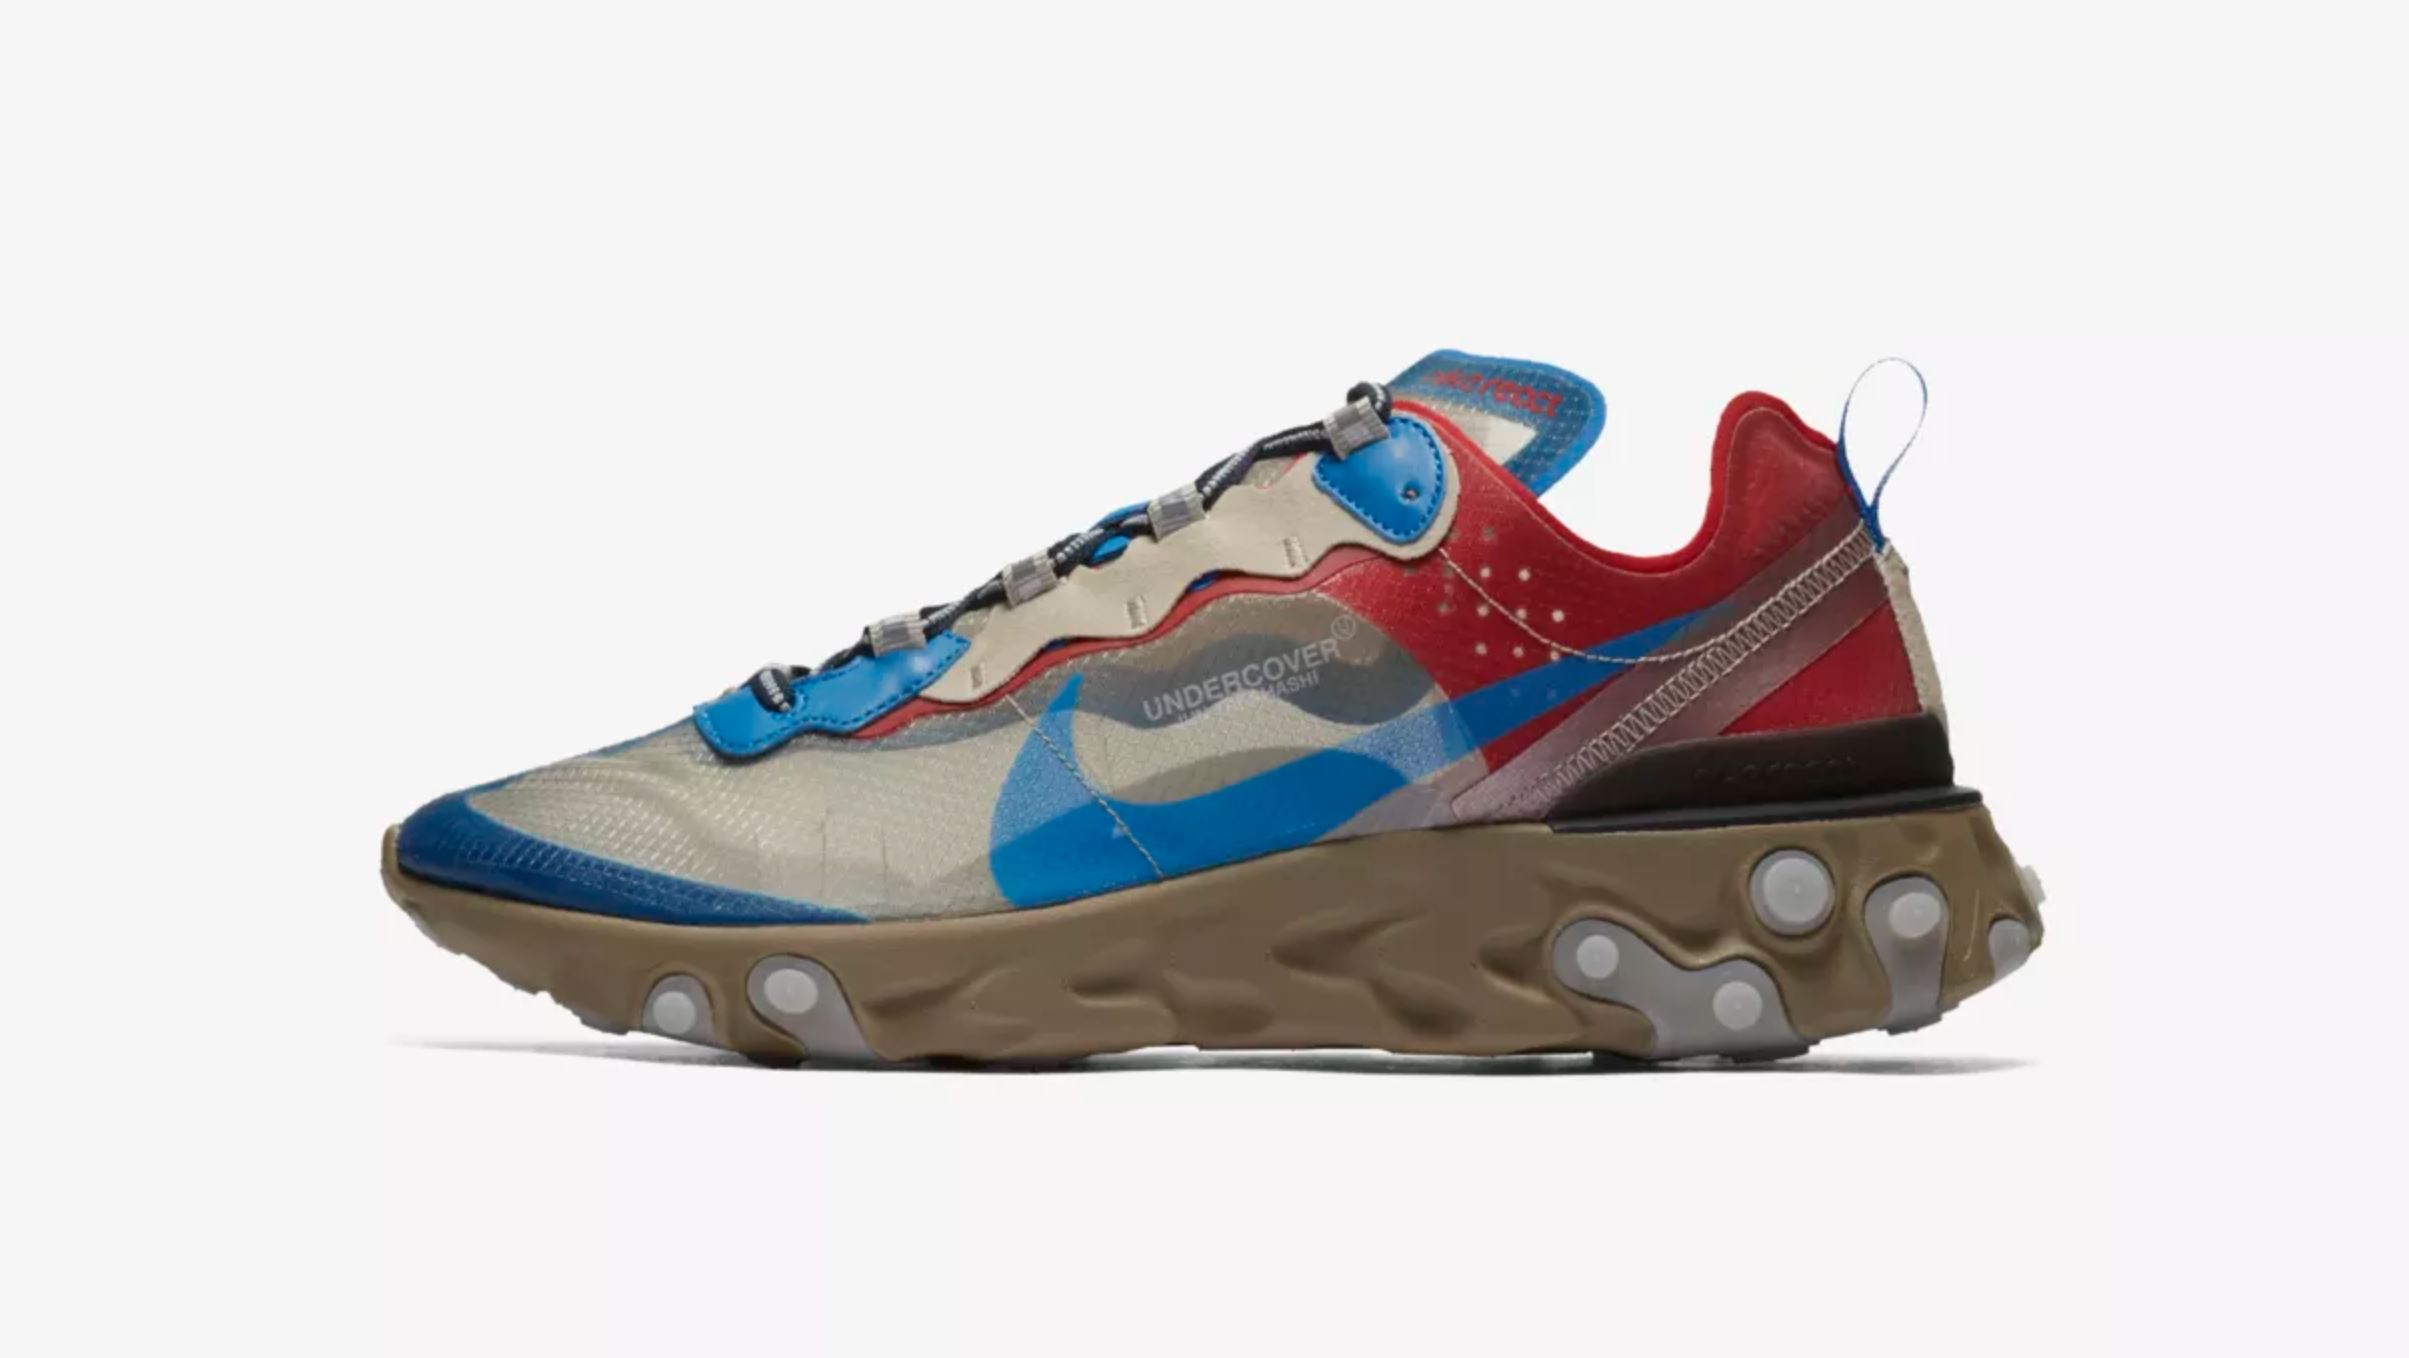 abada8f6 The Nike React Element 87 x UNDERCOVER to Release This Week ...